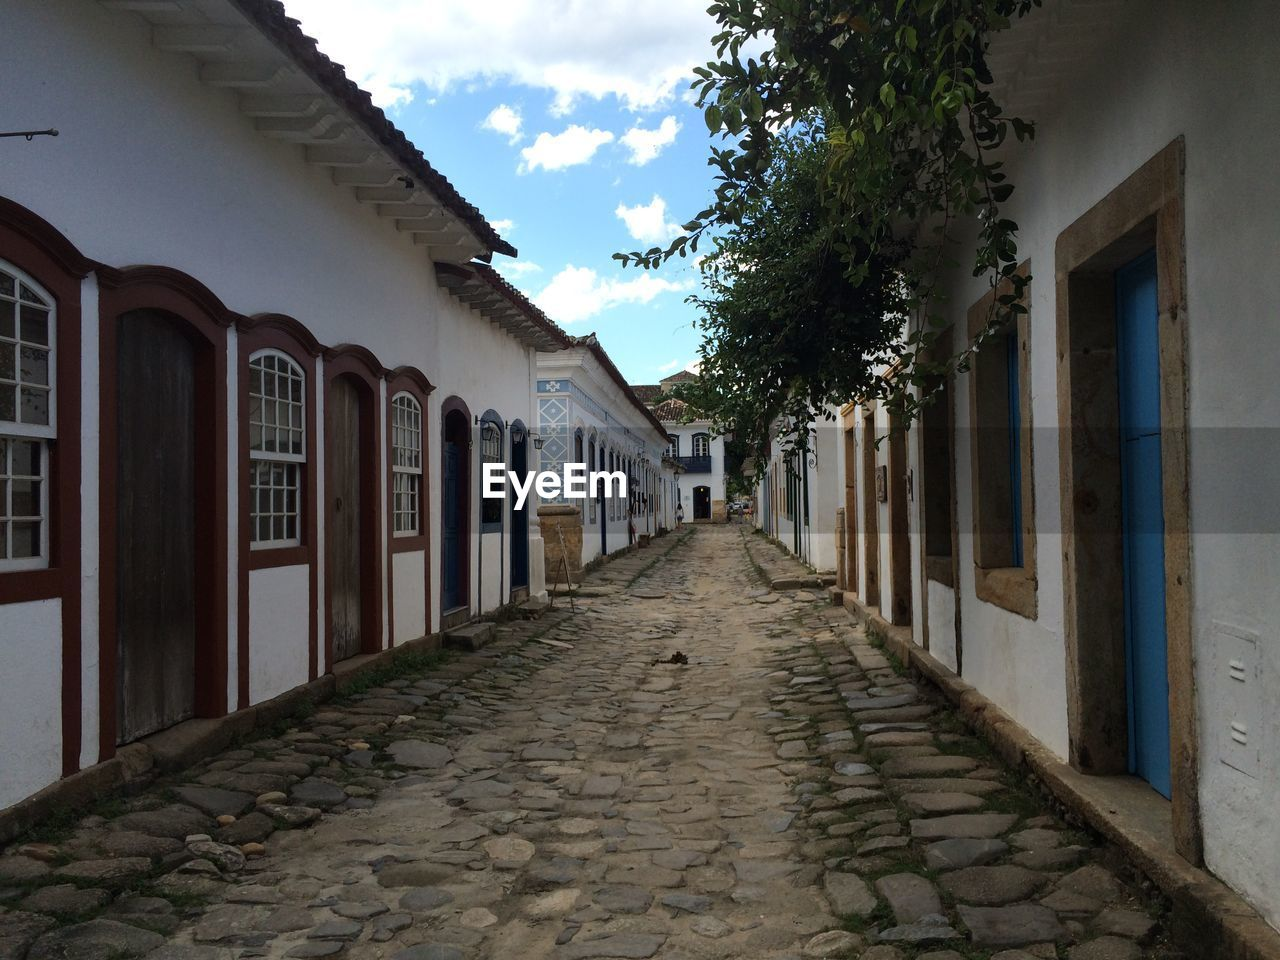 architecture, built structure, the way forward, building exterior, cobblestone, outdoors, day, sky, no people, walkway, tree